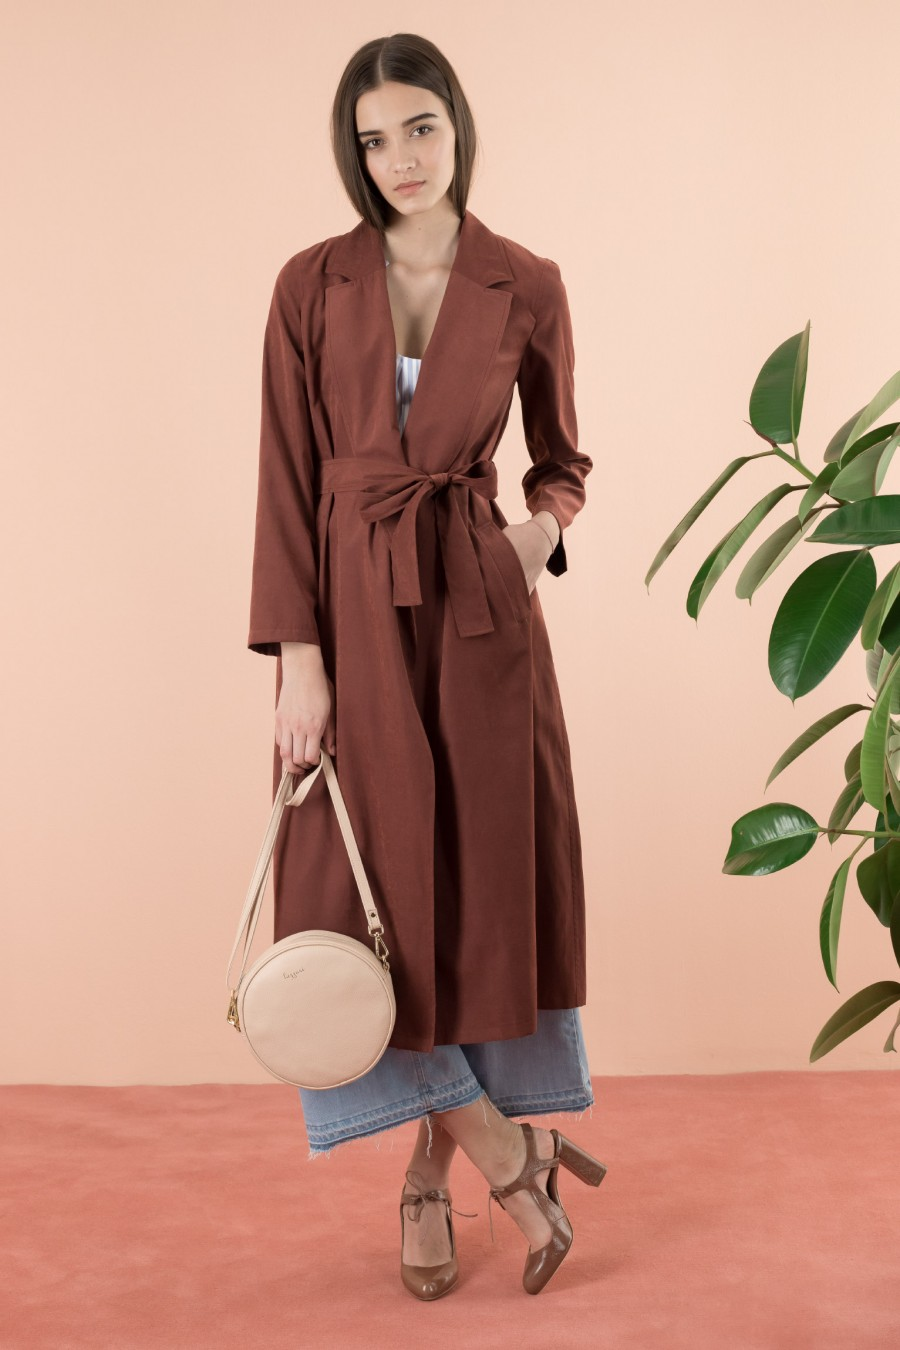 Overcoat made of a light and soft fabric